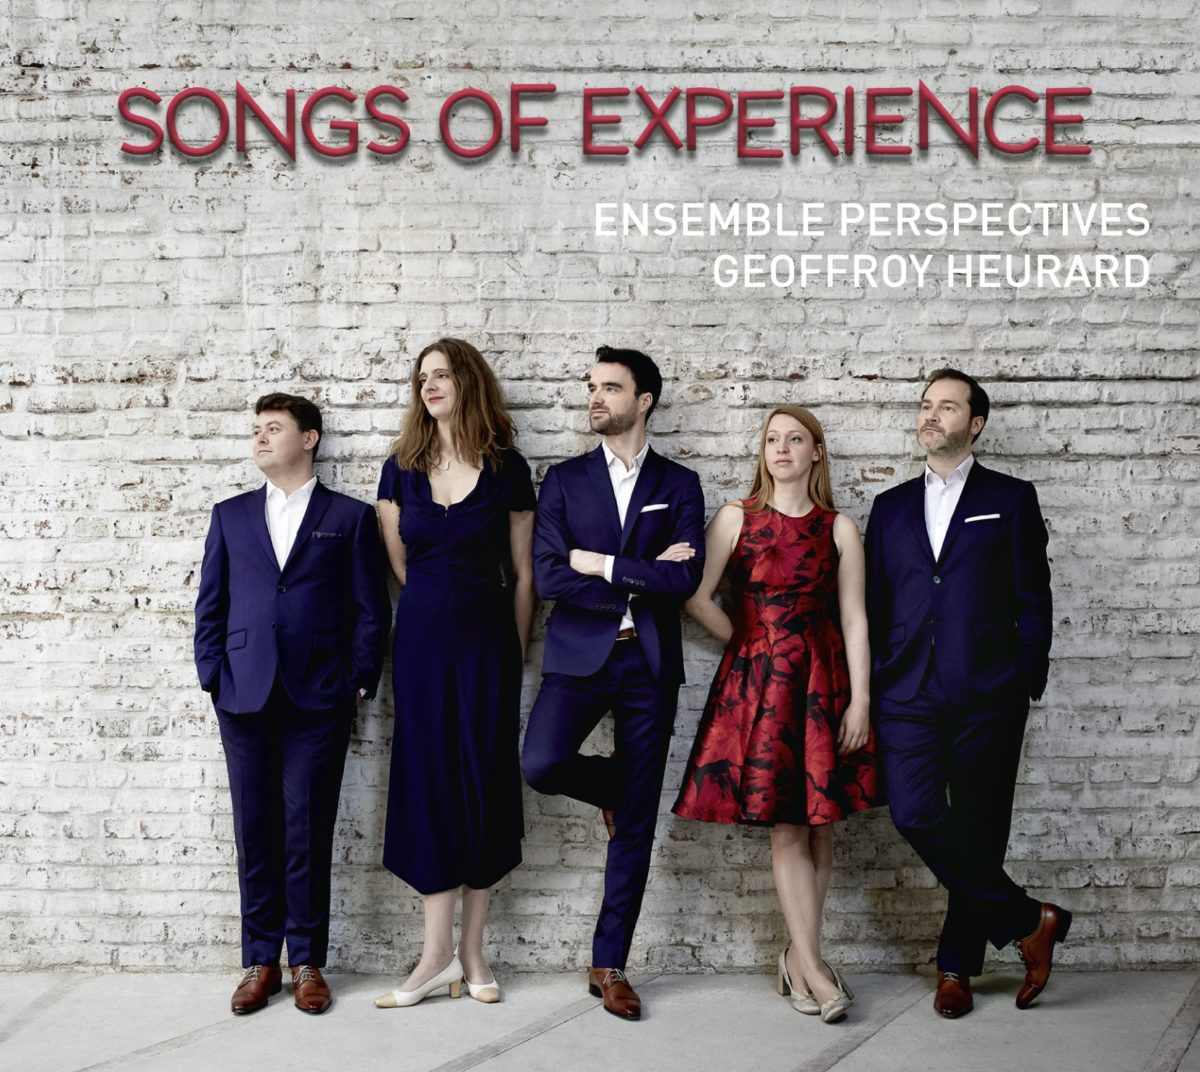 Songs of Experience Ensemble Perspectives